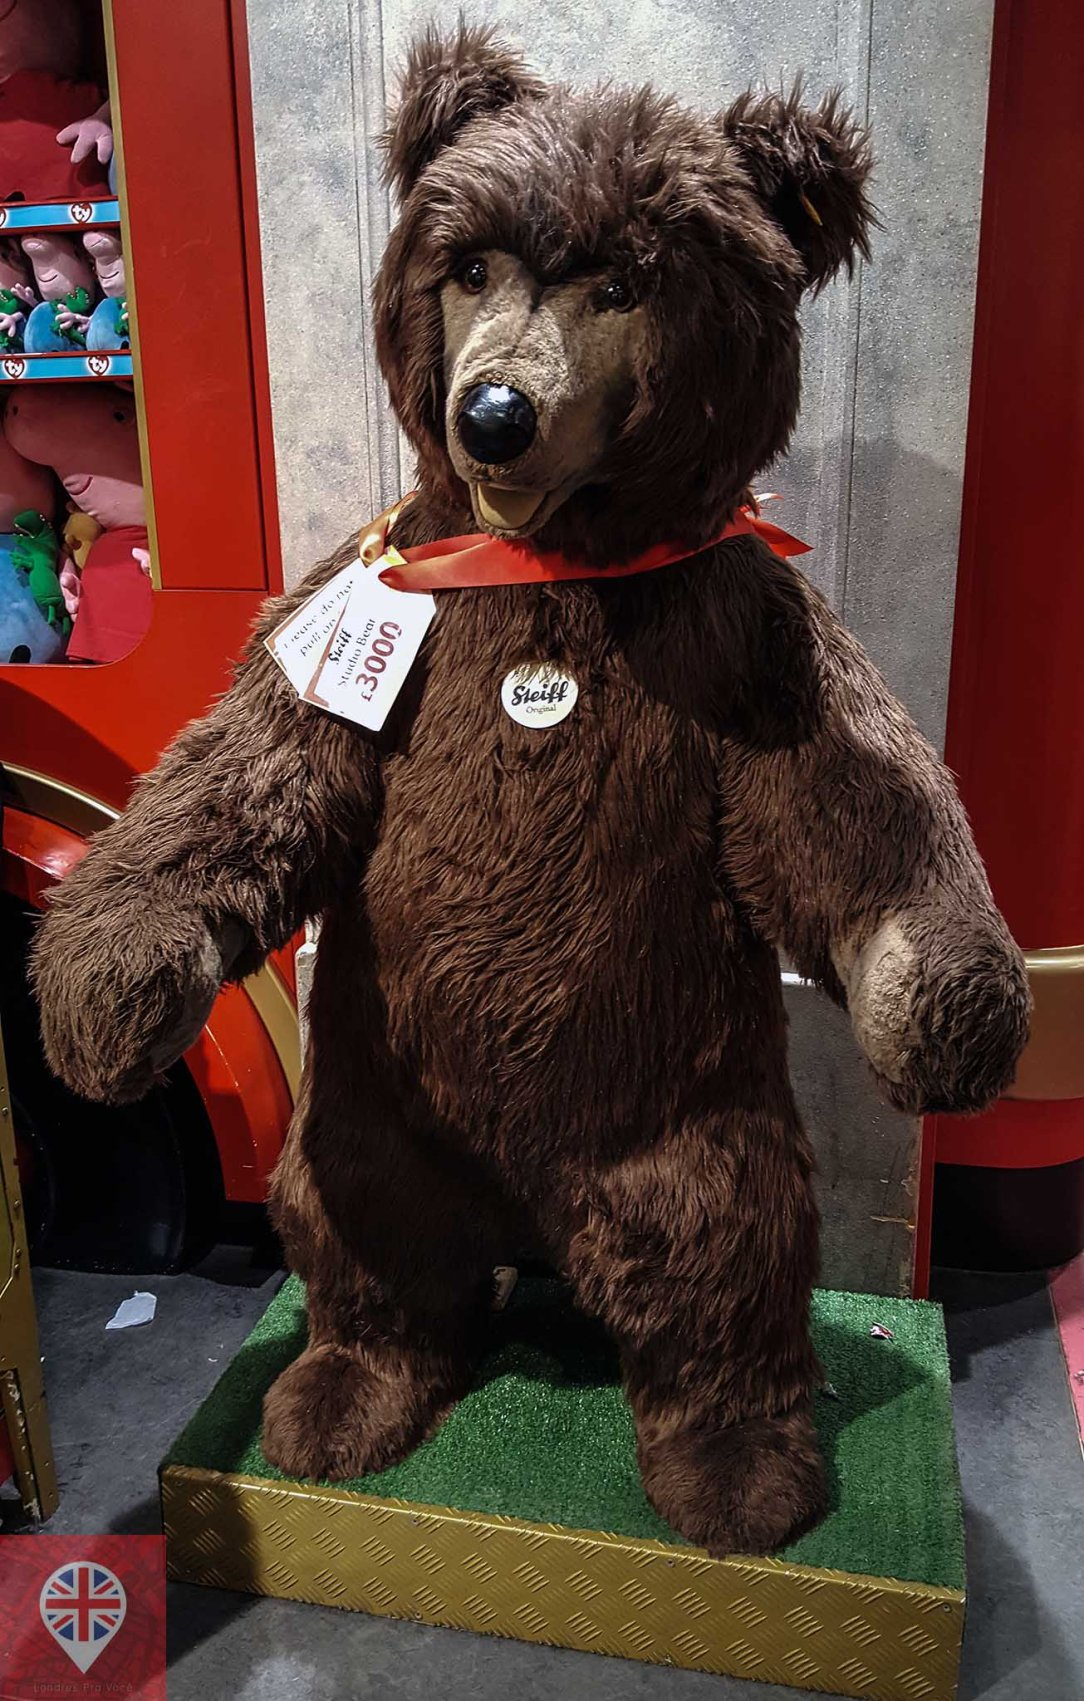 Hamleys bear